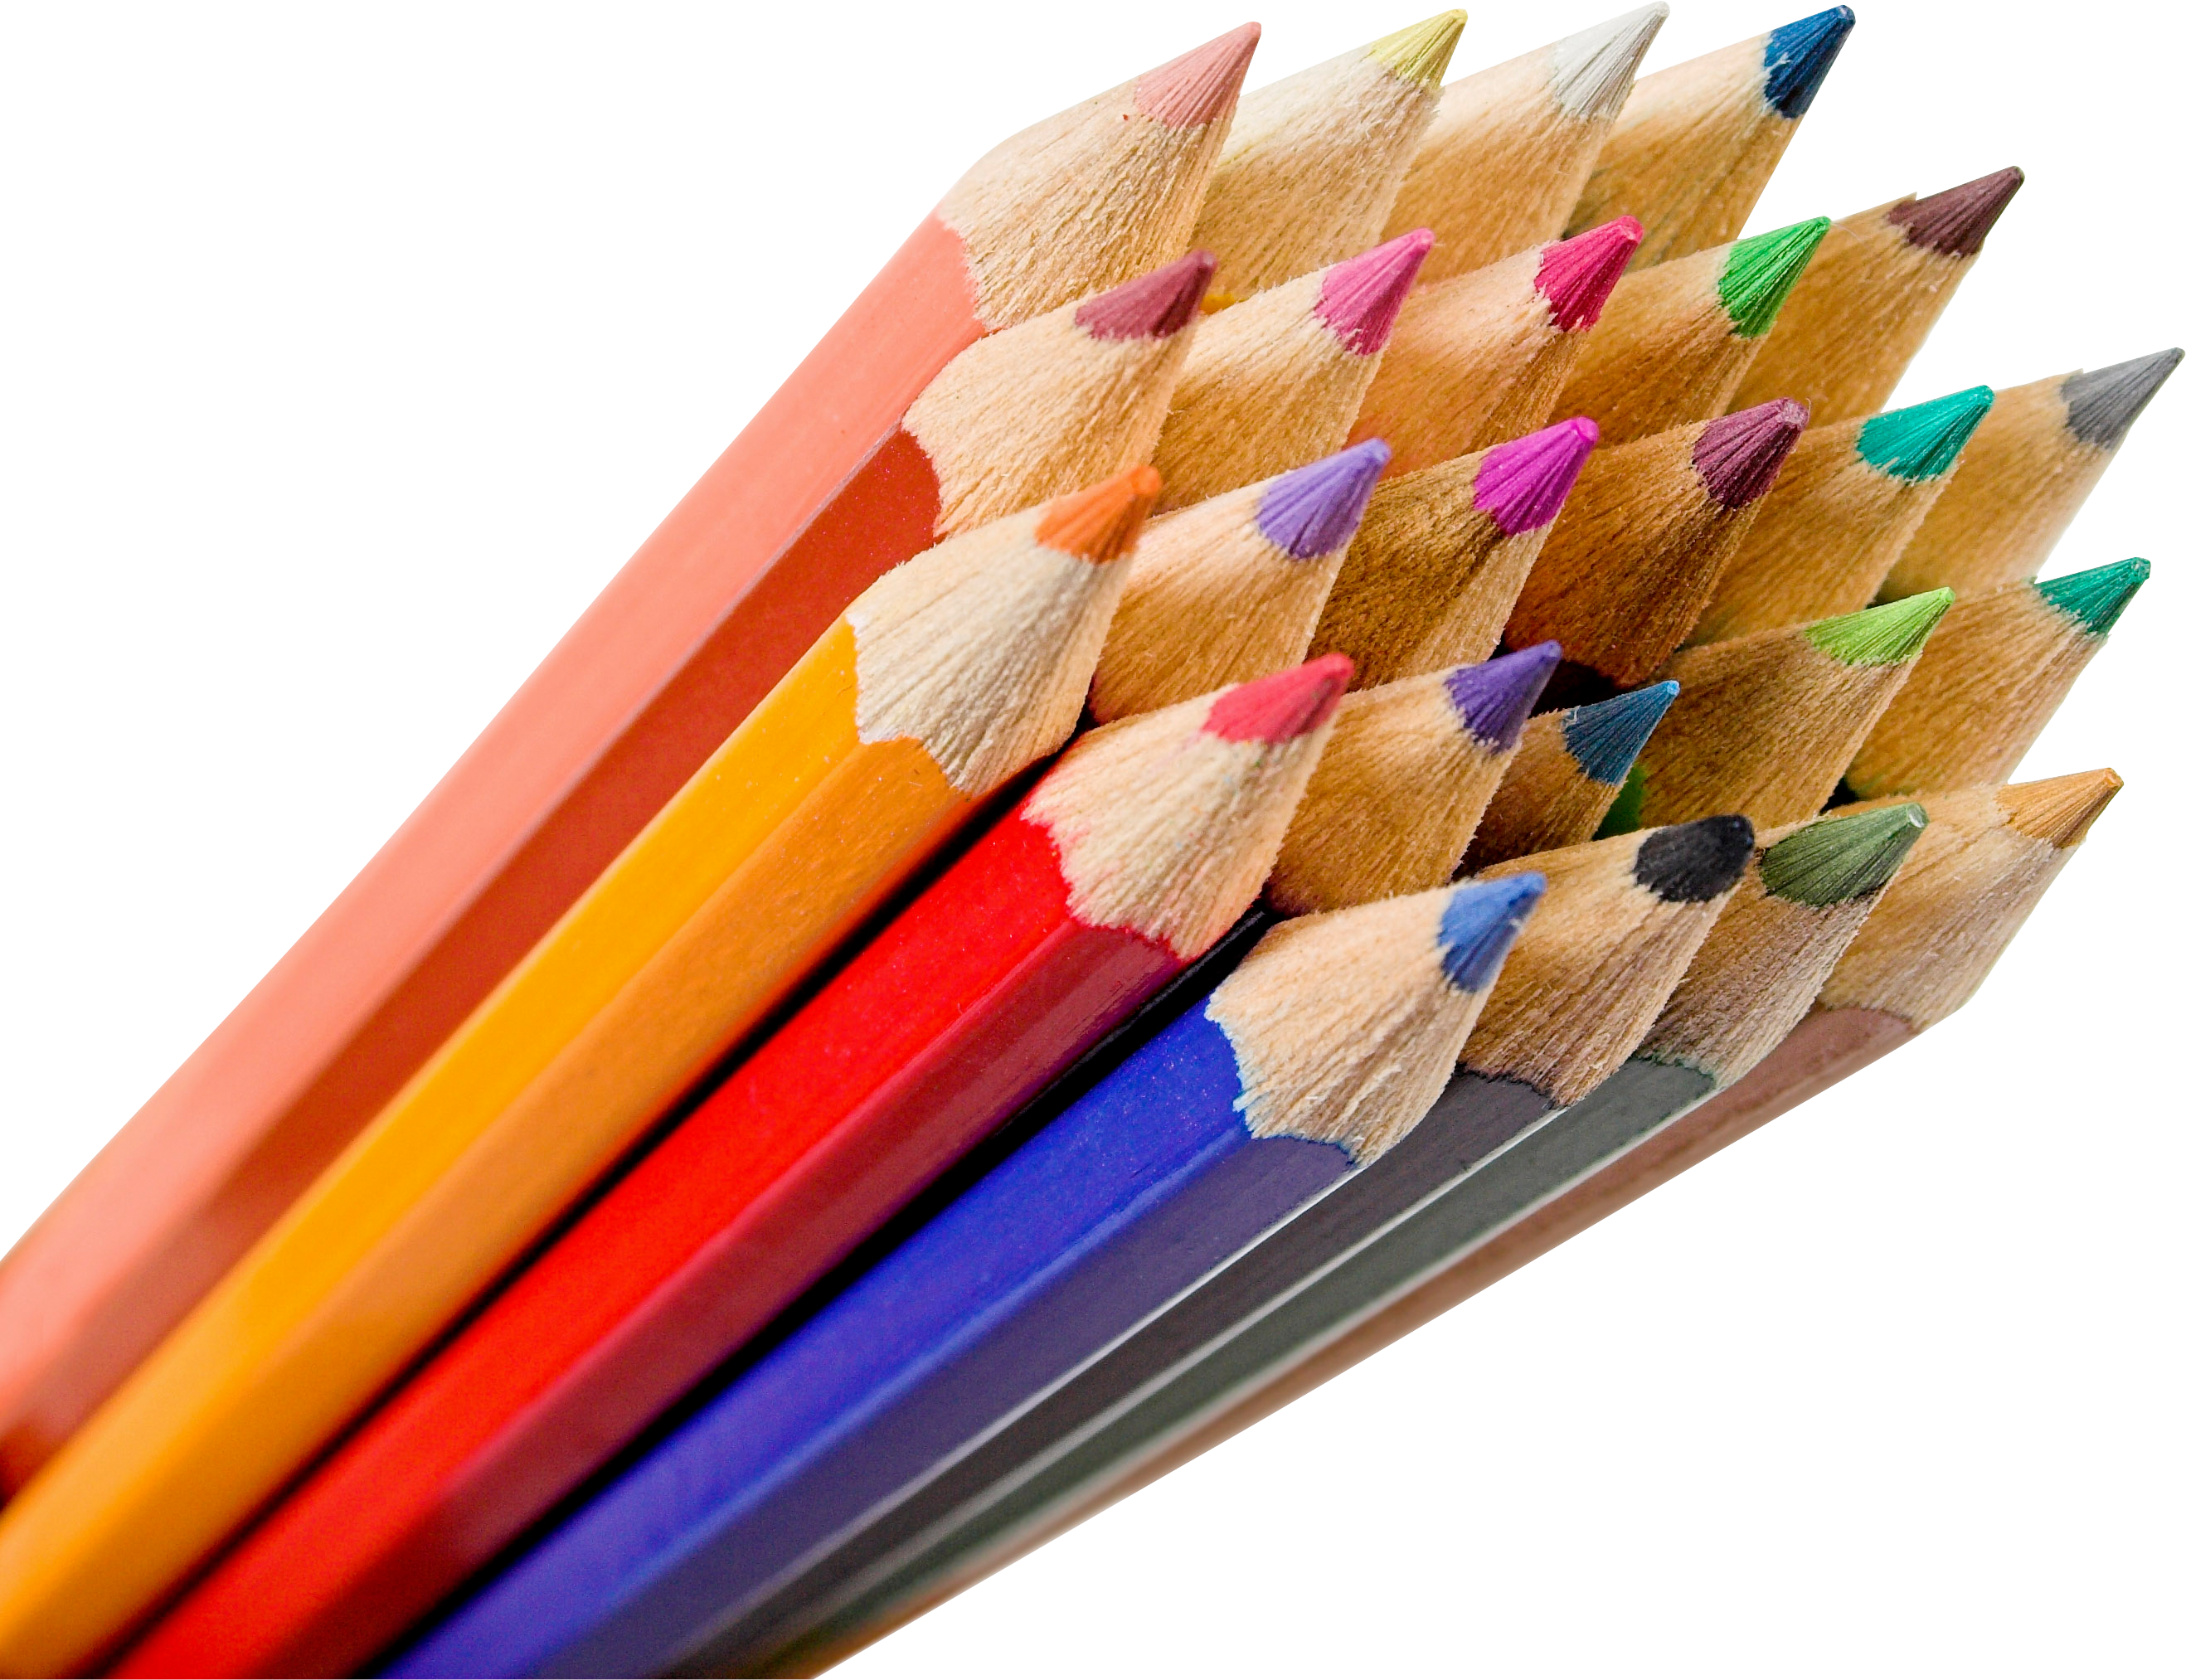 Colorful pencils PNG image - Pencil PNG